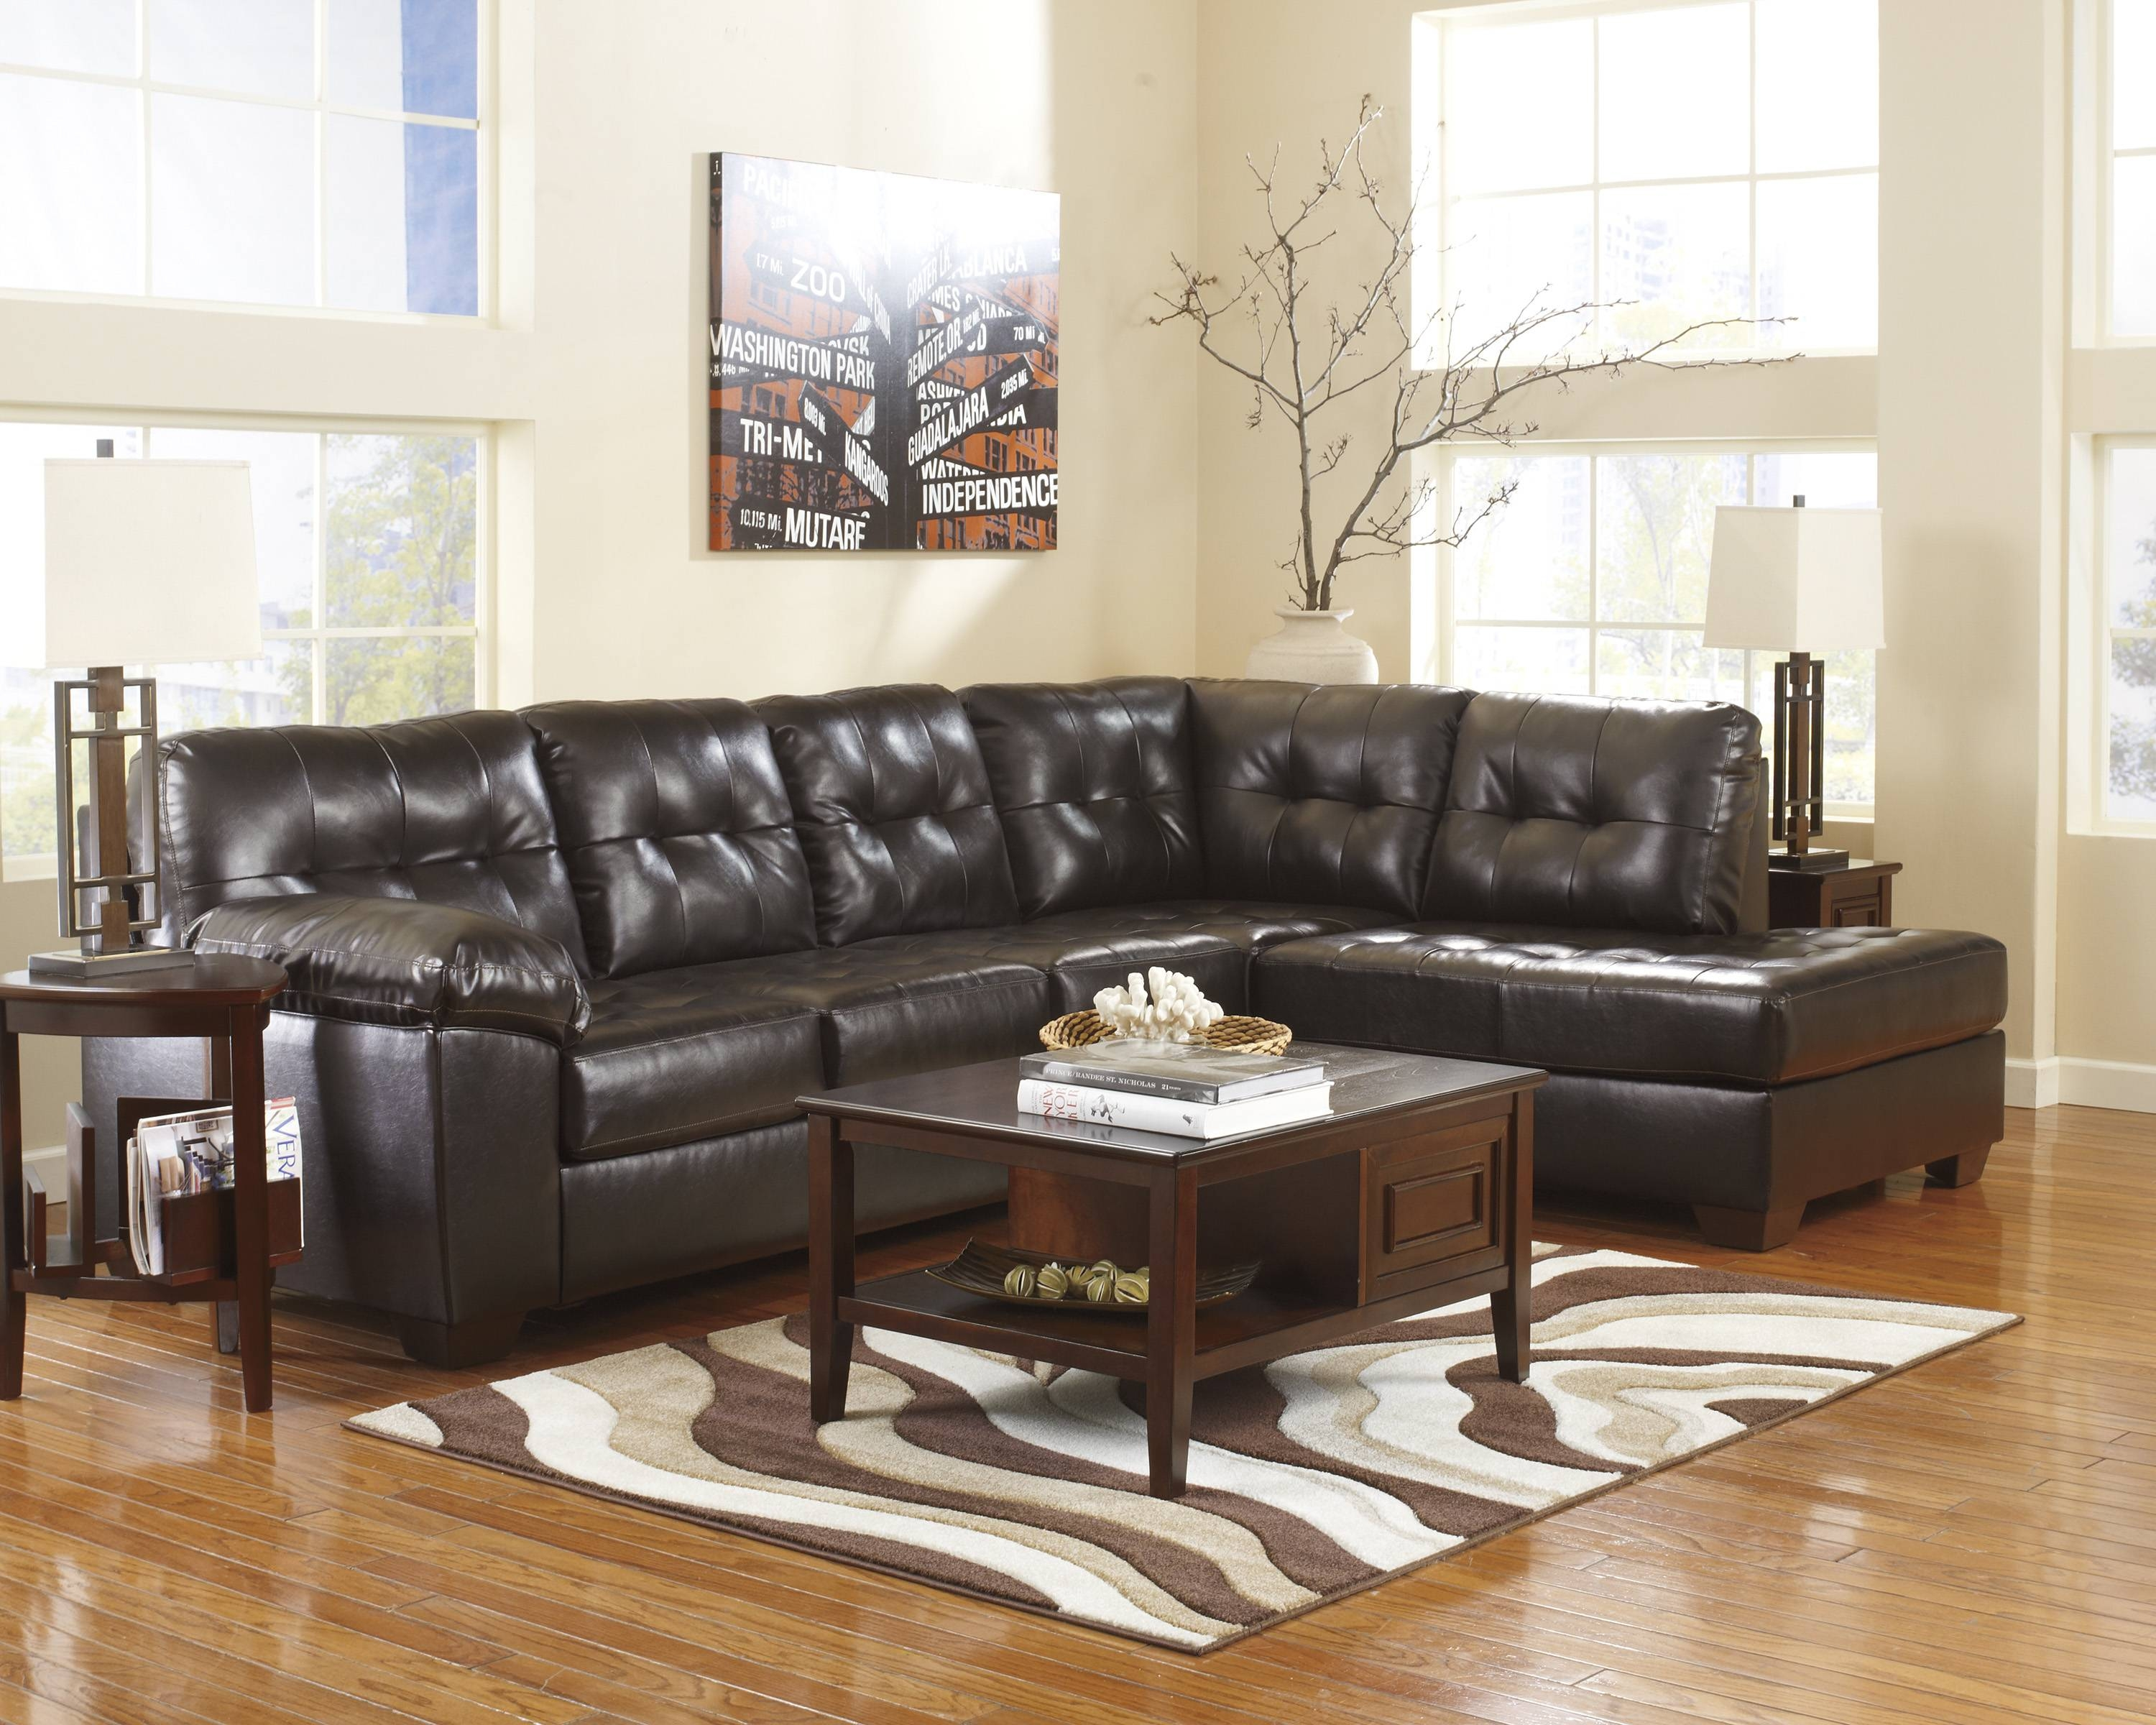 Chair & Sofa: Ashley Furniture Sectional Sofas | Sofa Sectionals in Ashley Faux Leather Sectional Sofas (Image 2 of 15)